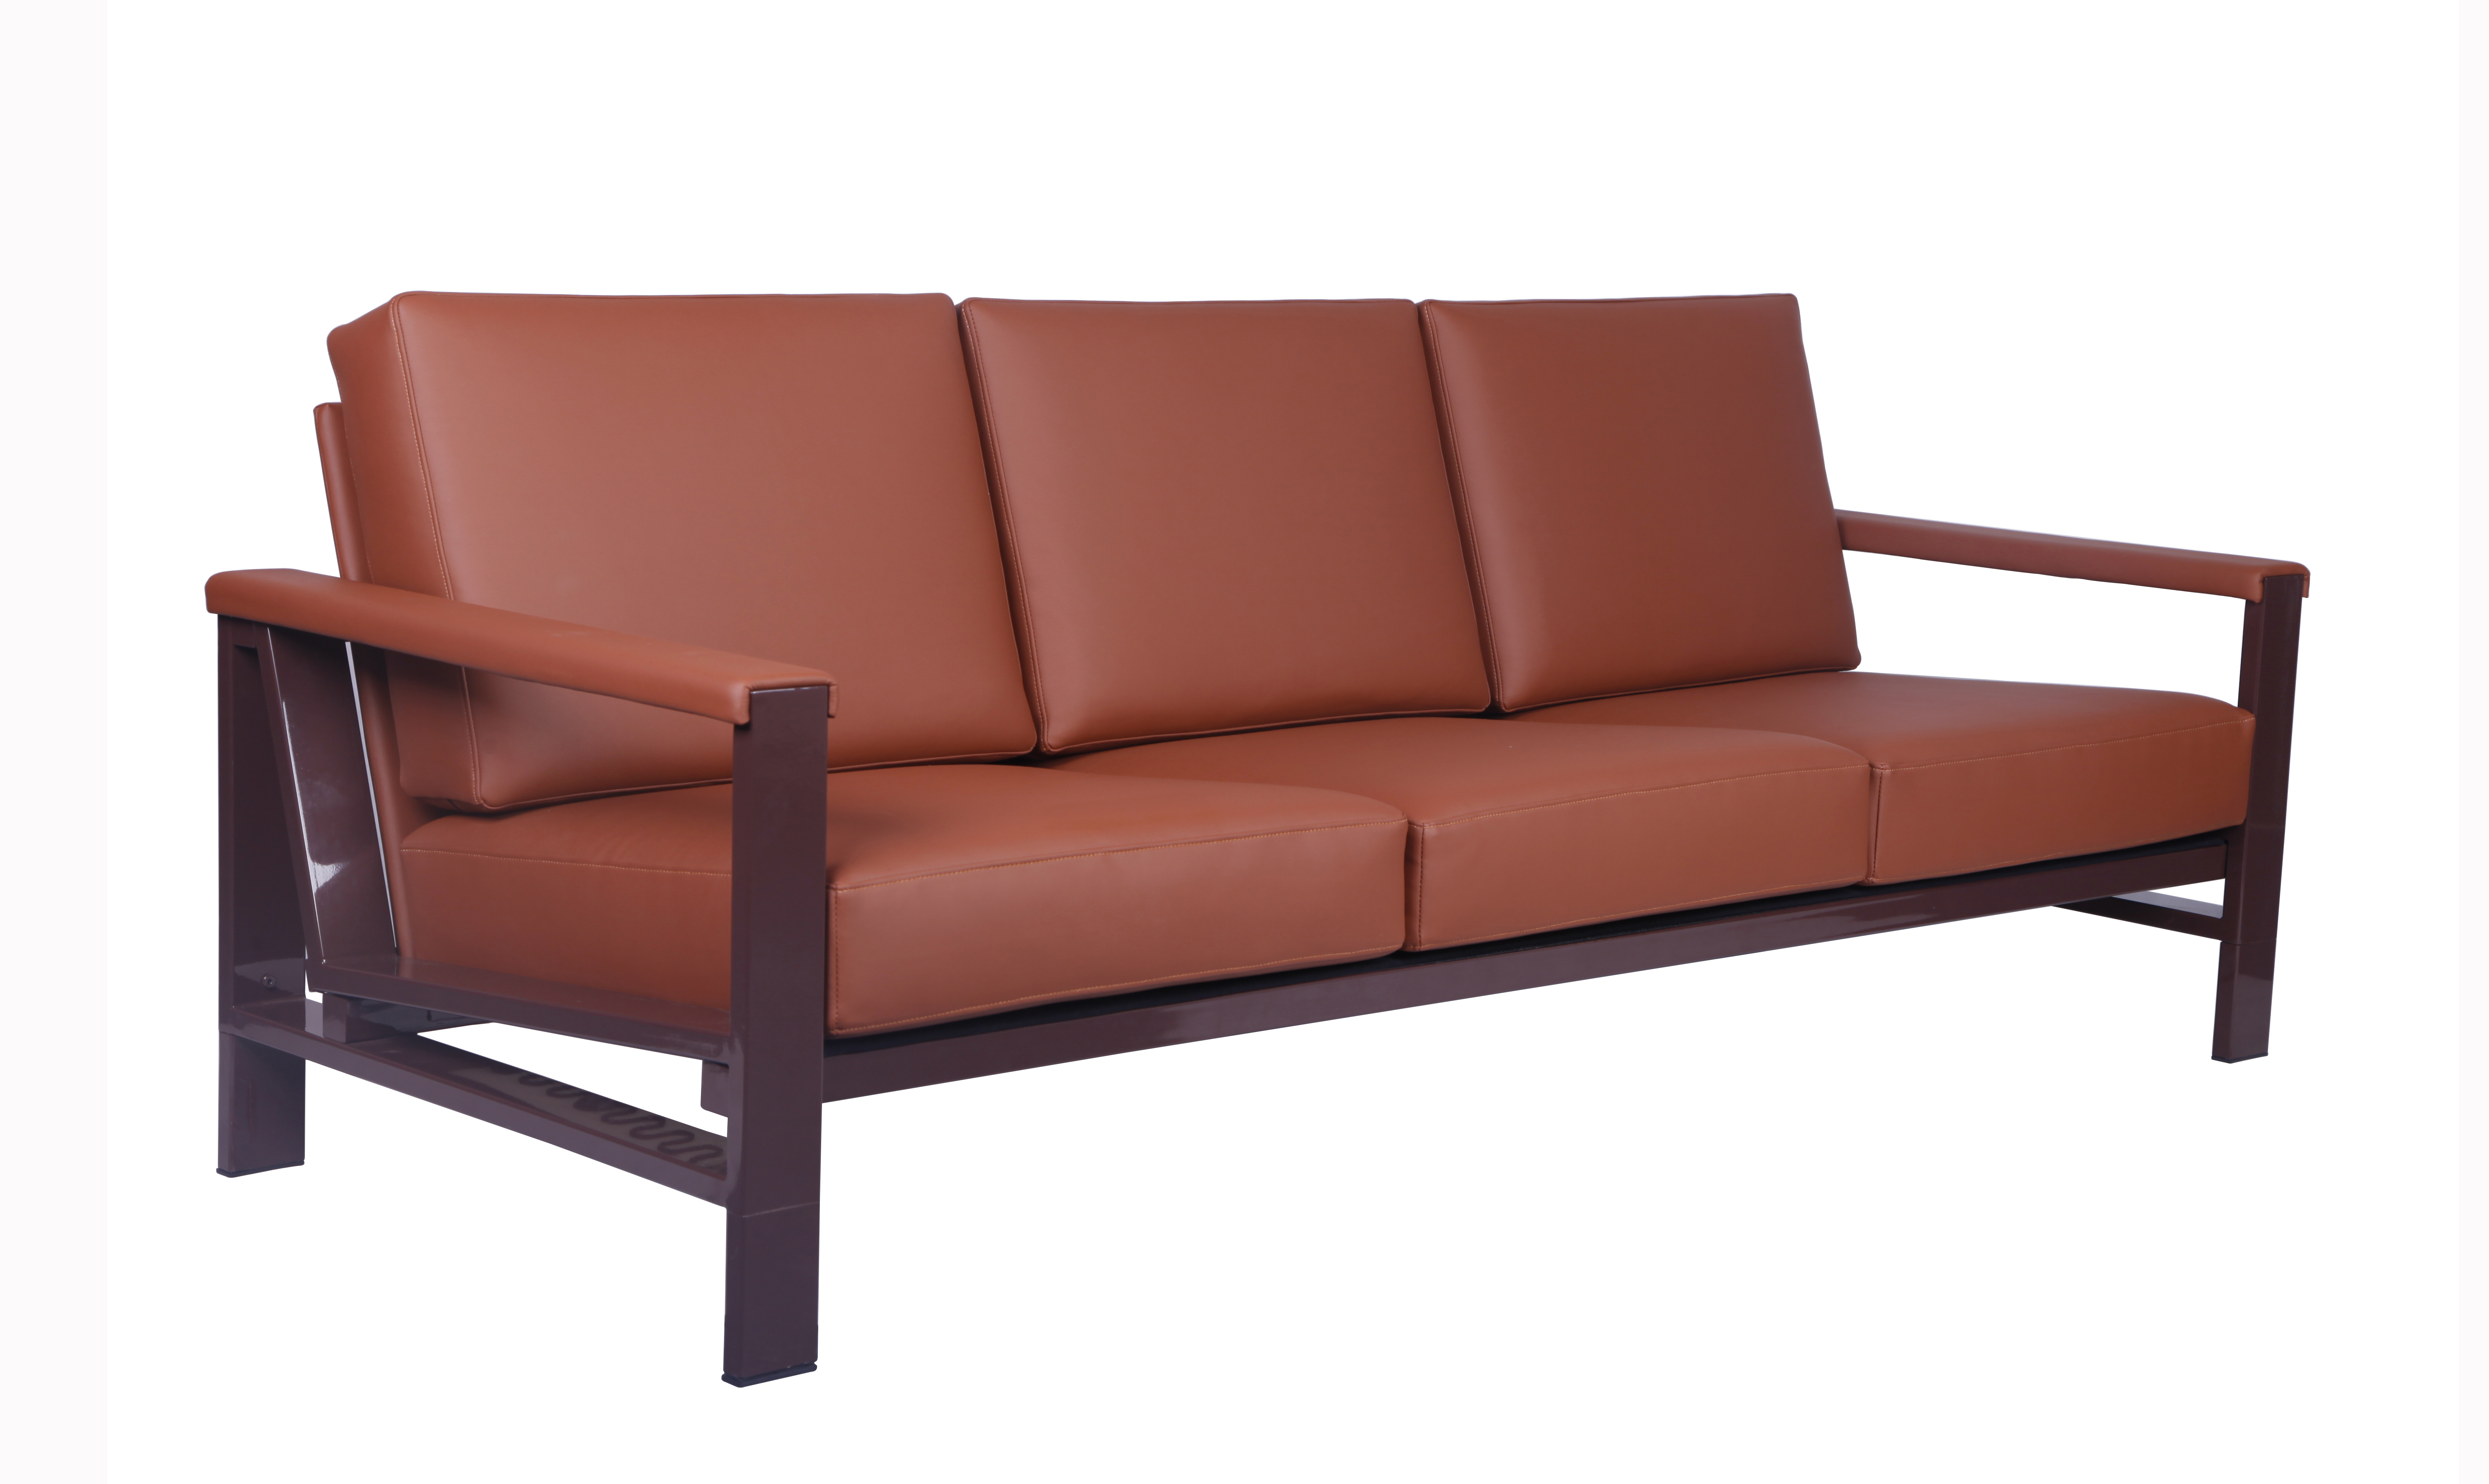 Strong-Metal-Frame-Leather-Sofa-for-Living-Room